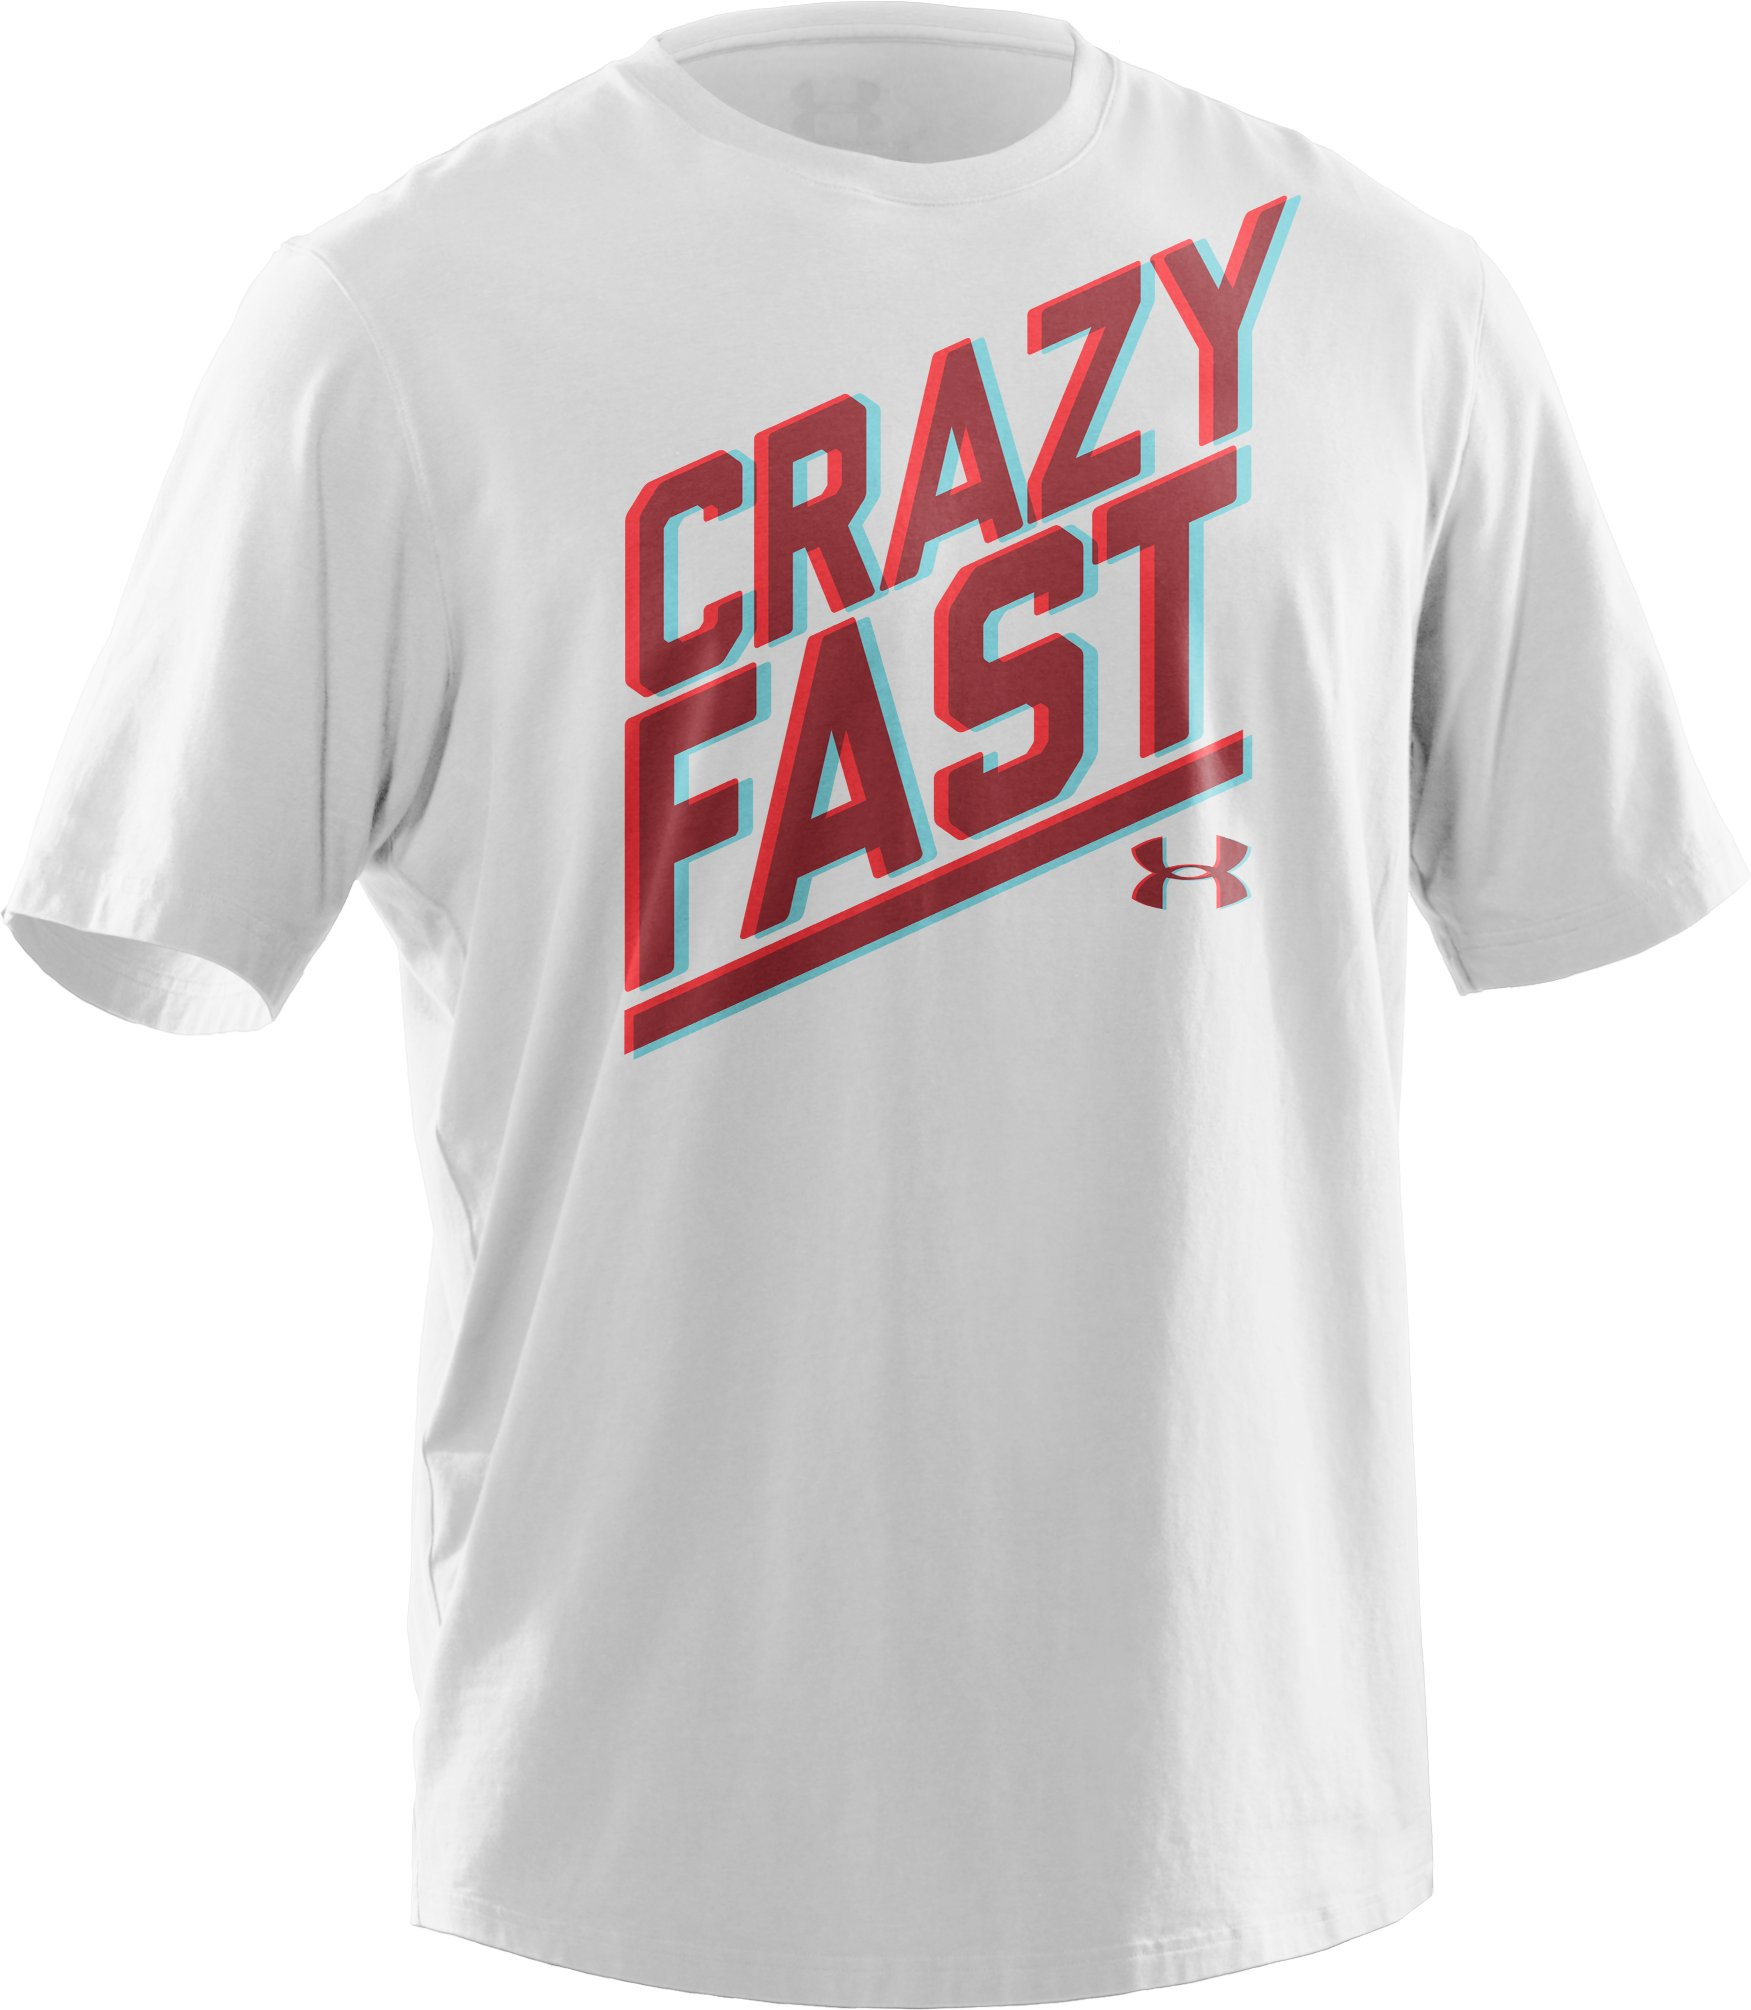 Men's Charged Cotton® Crazy Fast T-Shirt, White